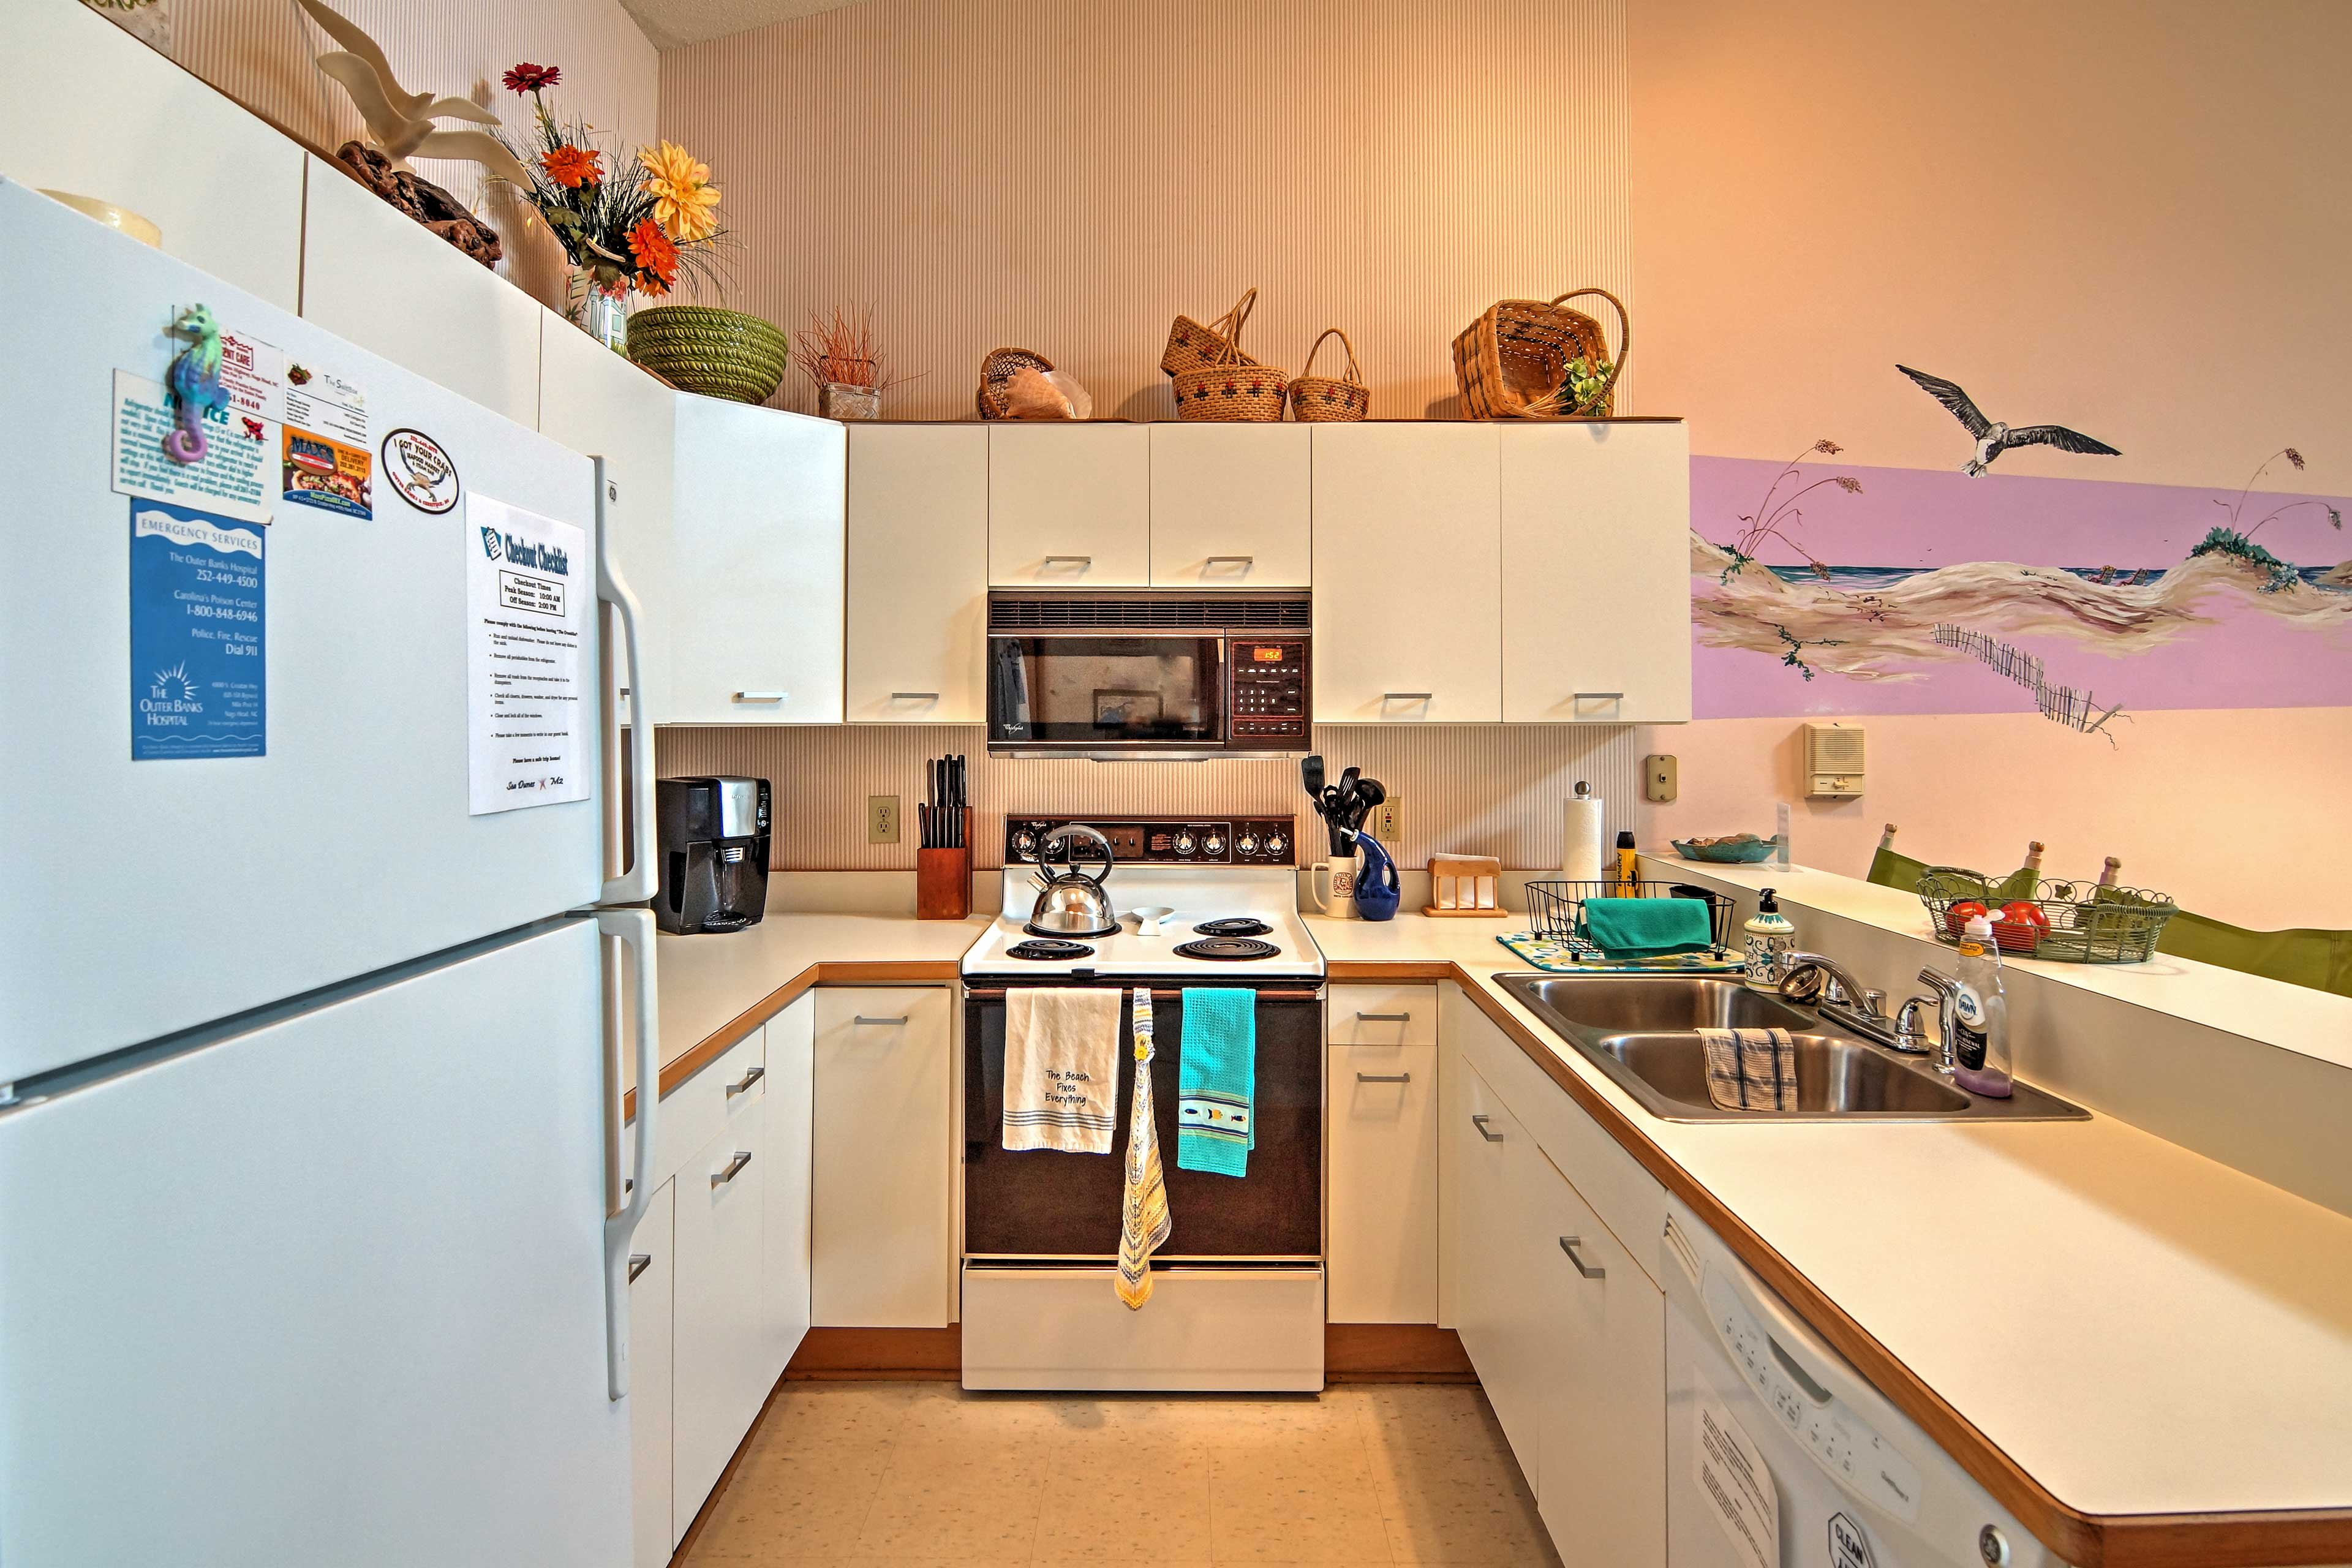 Whip up tasty home-cooked goods in the well-equipped kitchen.